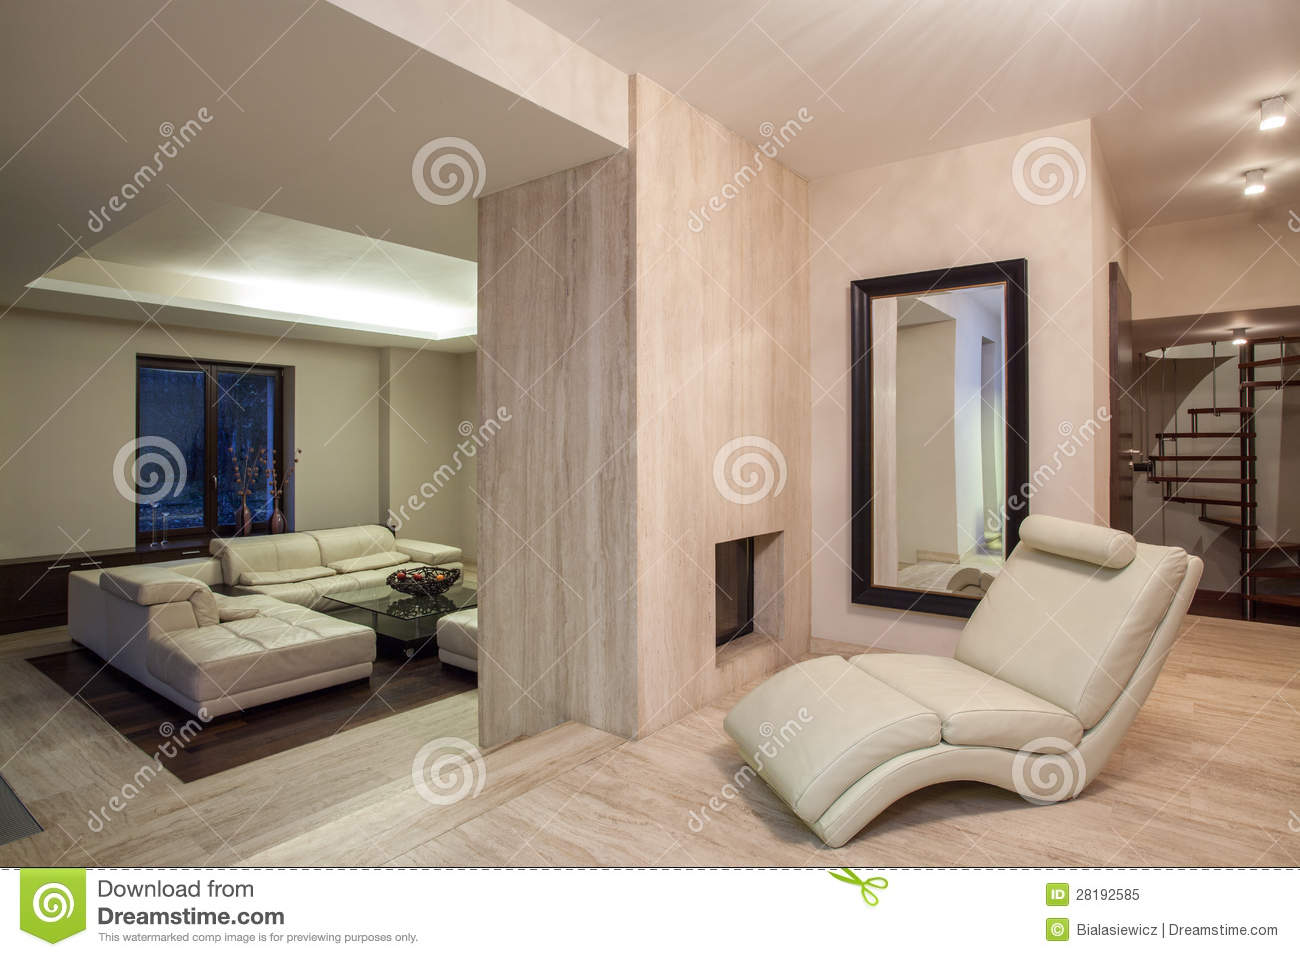 travertine house - living room with a fireplace royalty free stock